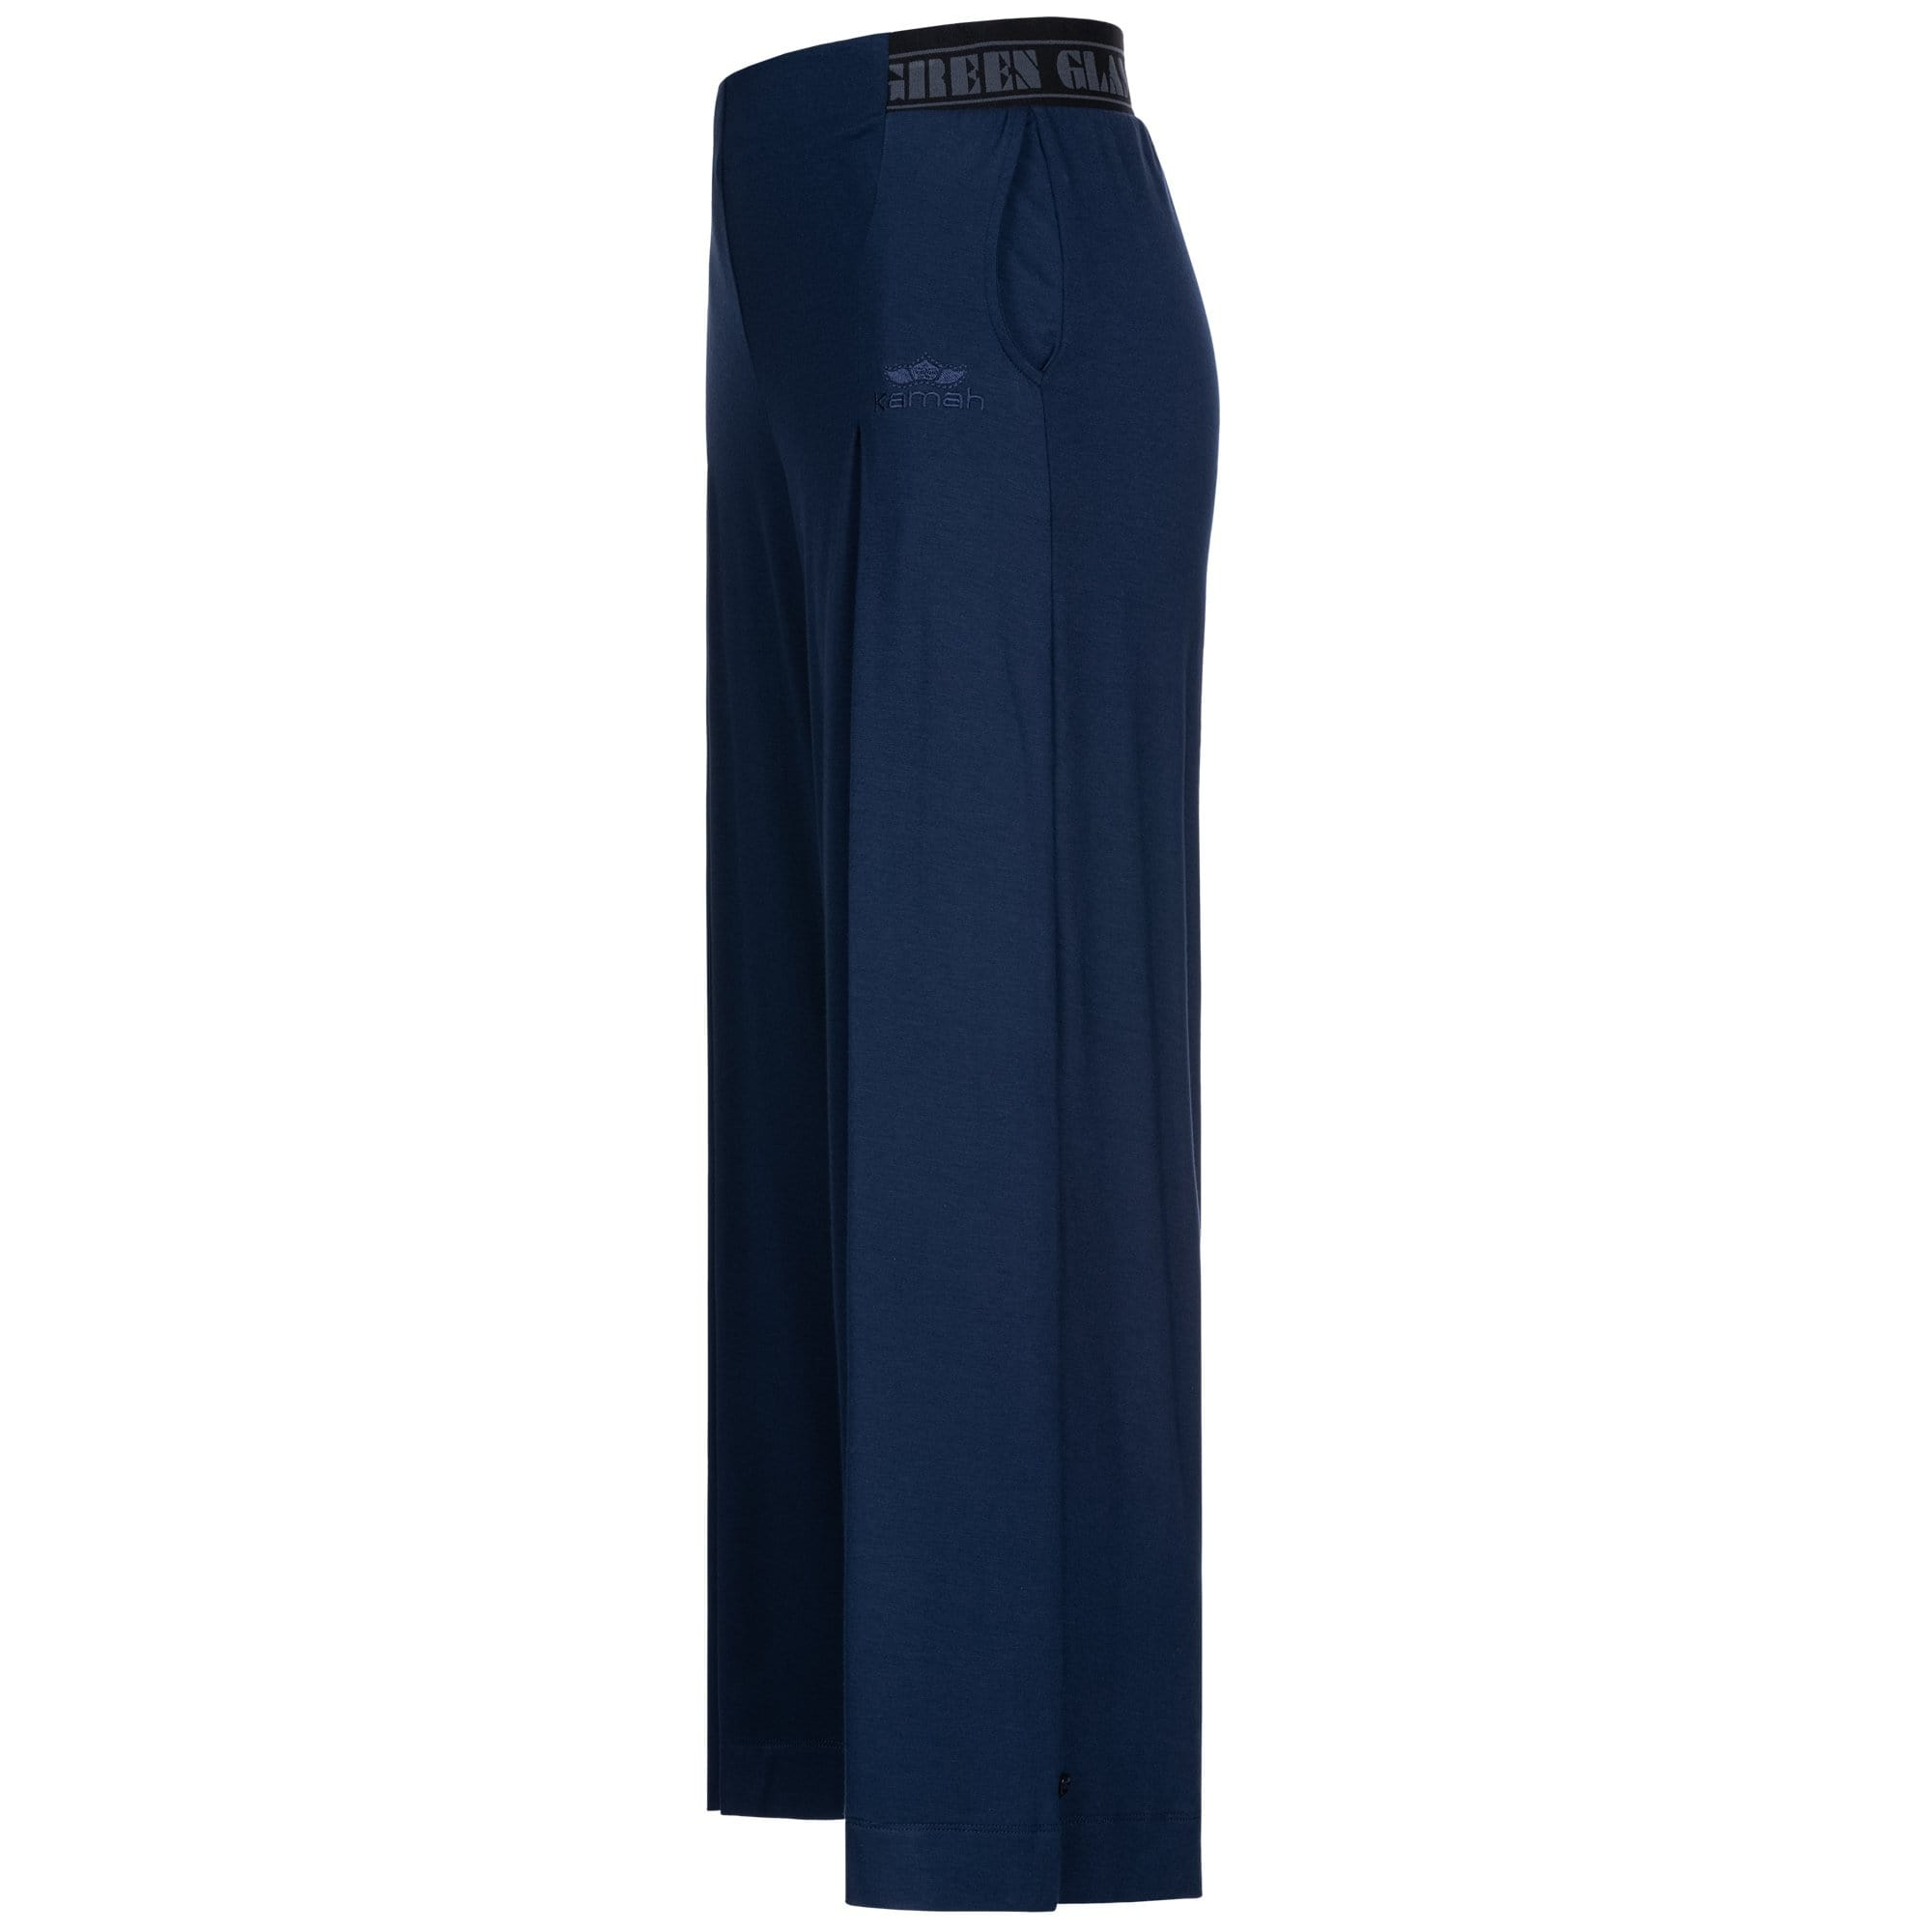 "Culotte pants ""Wanda"", nightblue - variable 3/4 Yoga-Pant - Kamah Yoga and Style"